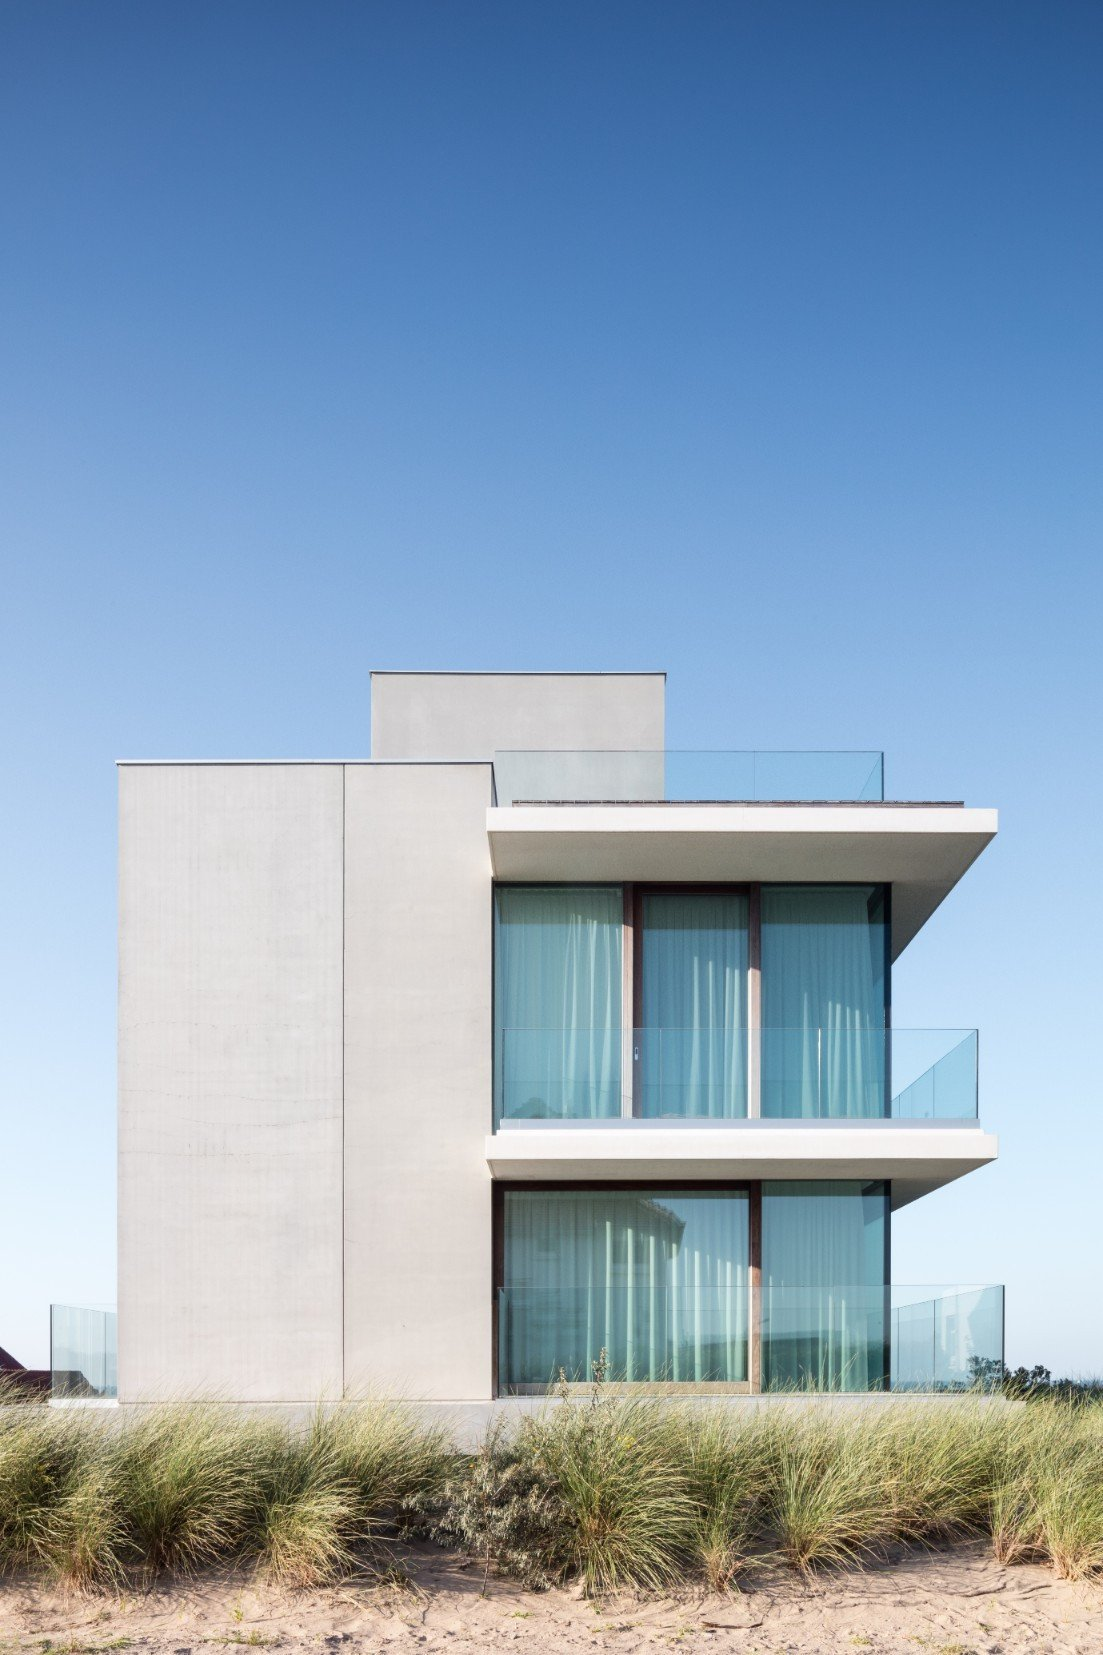 Rietveldprojects-Residence-ON-appartement-design-architectuur-kust-tvdv2